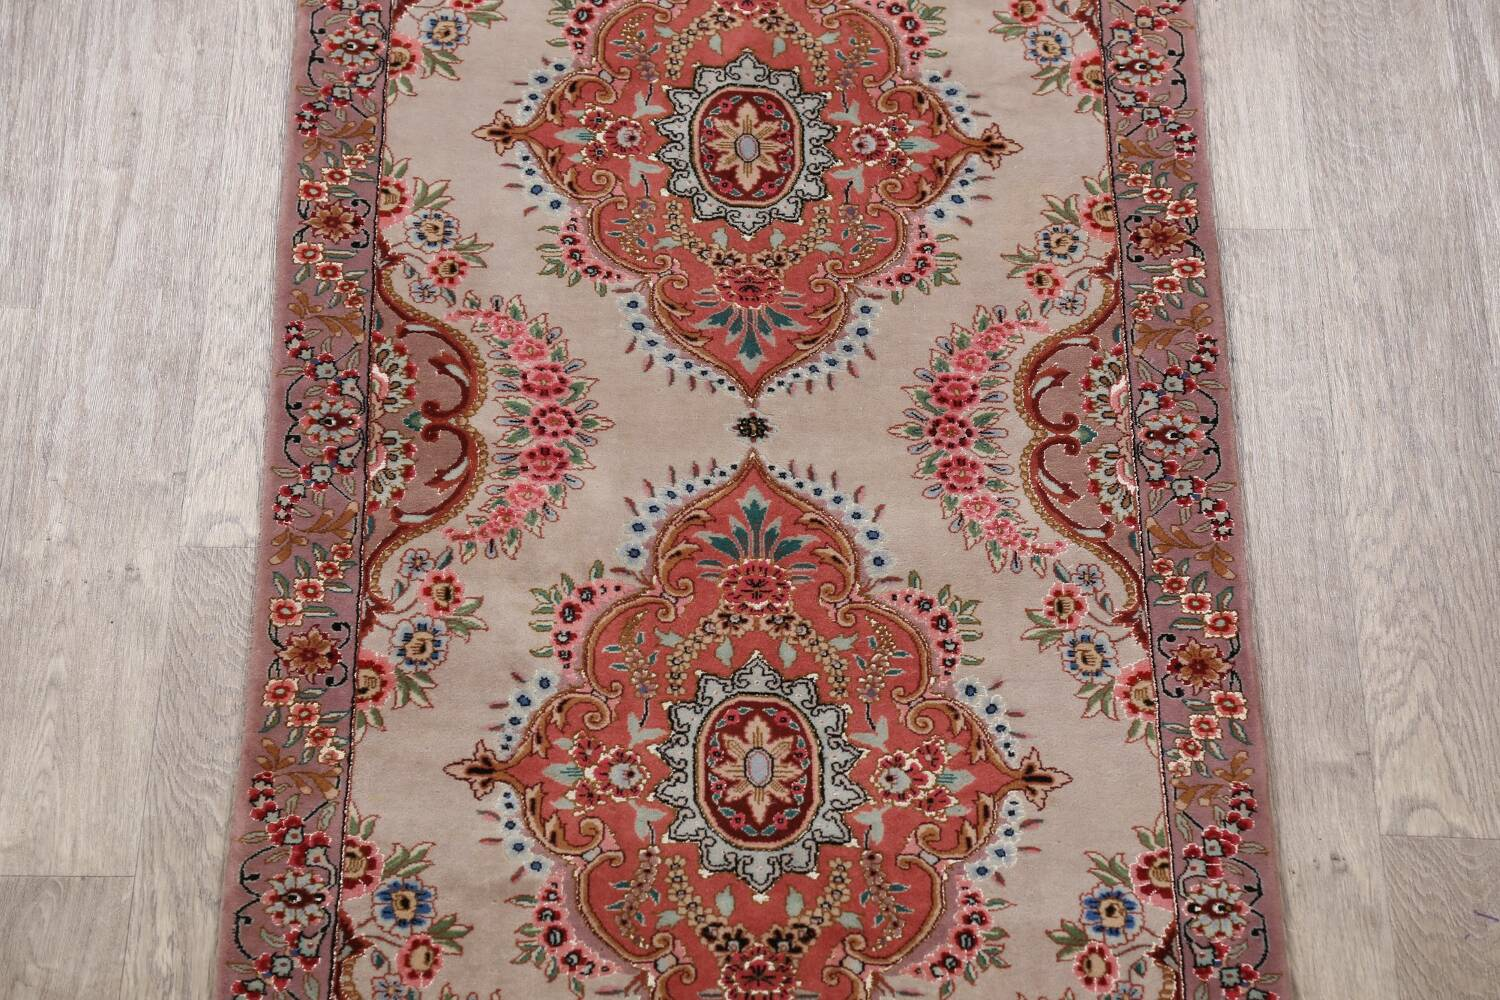 All-Over Floral Tabriz Persian Runner Rug 3x12 image 4